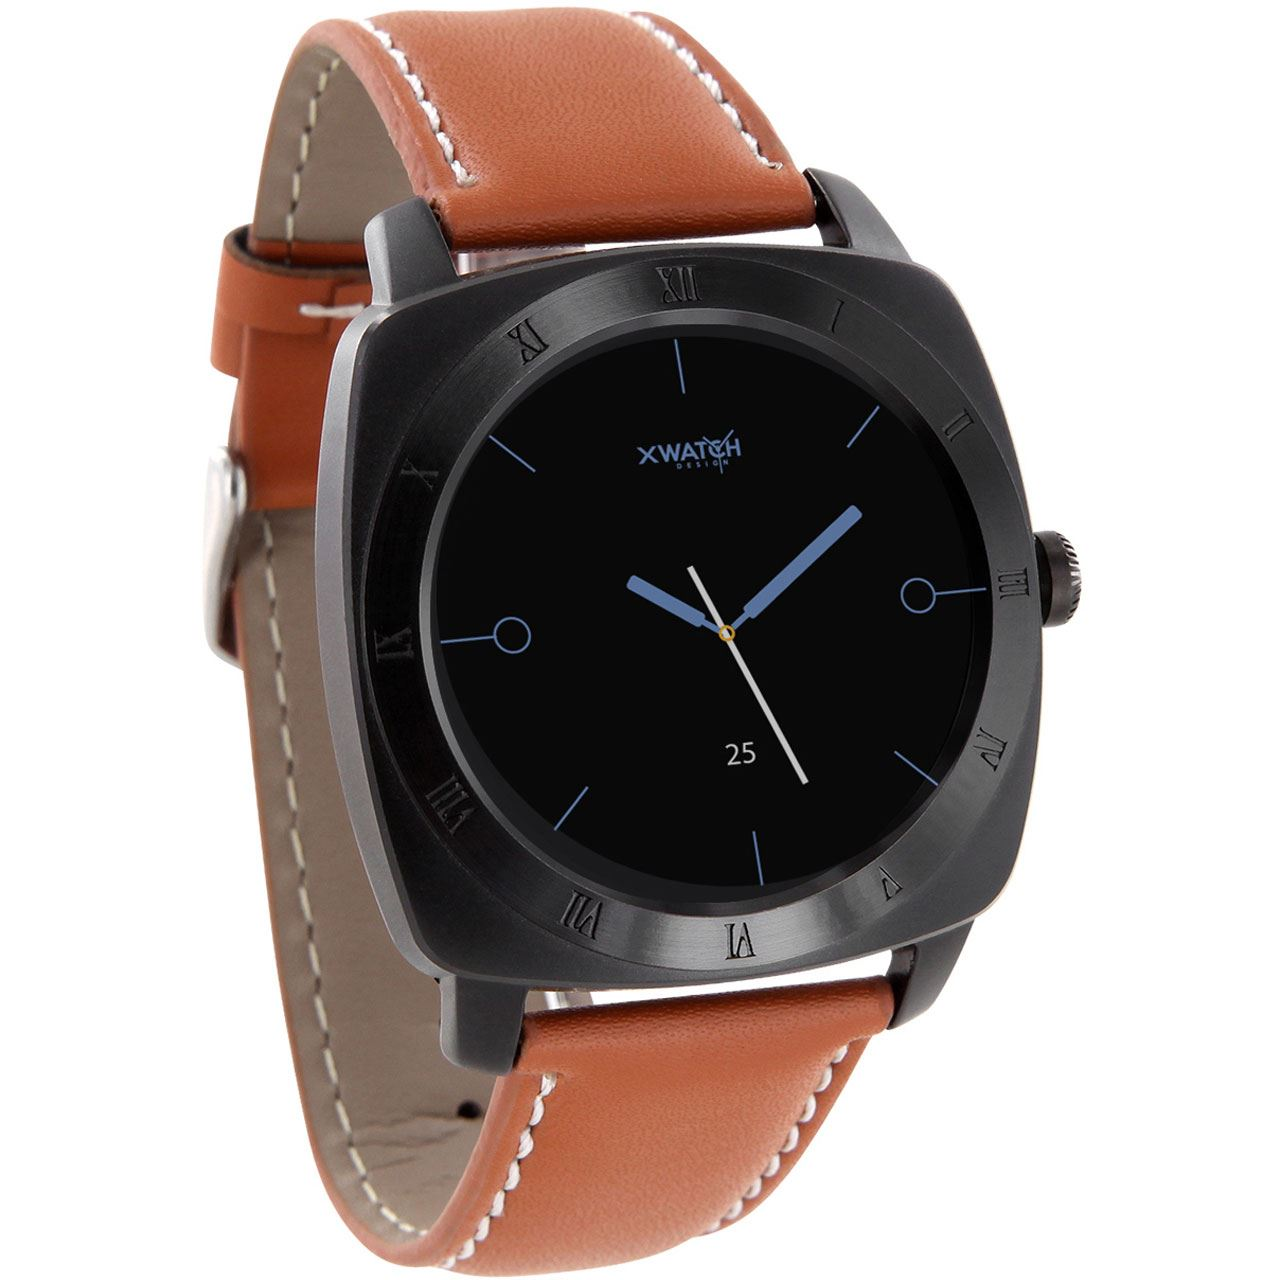 Xlyne Smart Watch NARA XW black chrome - cognac